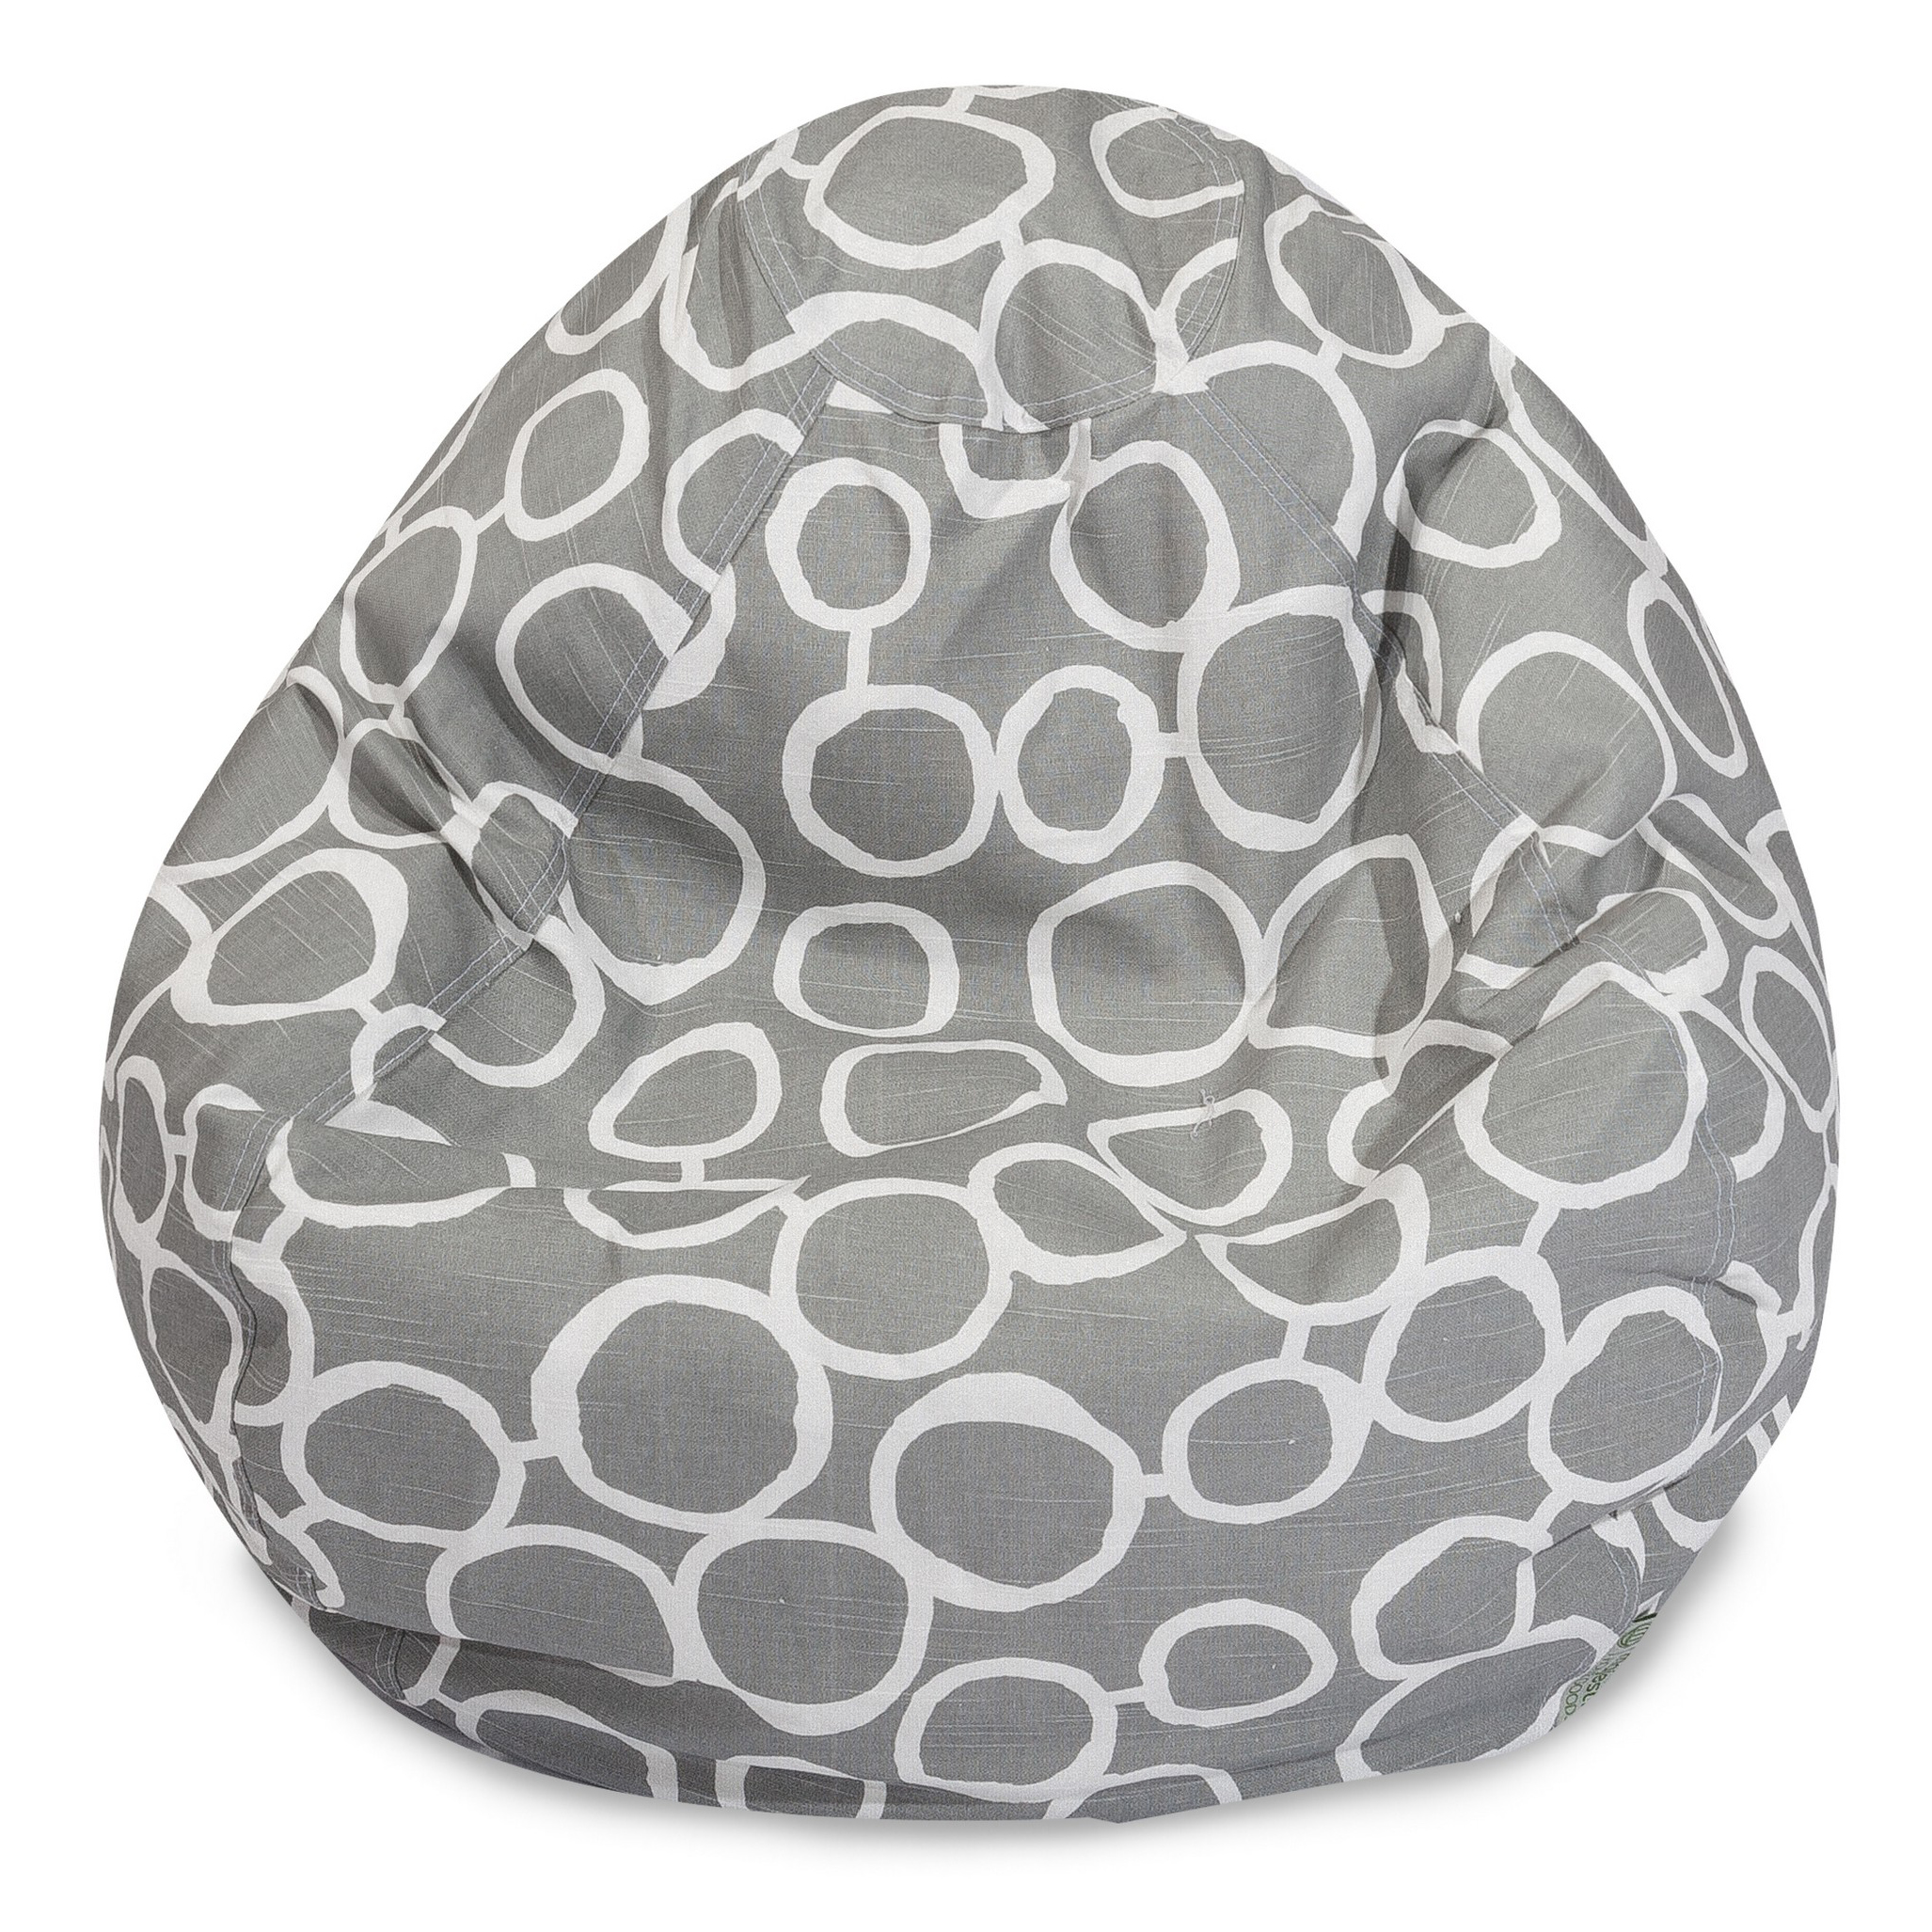 Majestic Home Goods Indoor Gray Fusion Classic Bean Bag Chair 28 in L x 28 in W x 22 in H